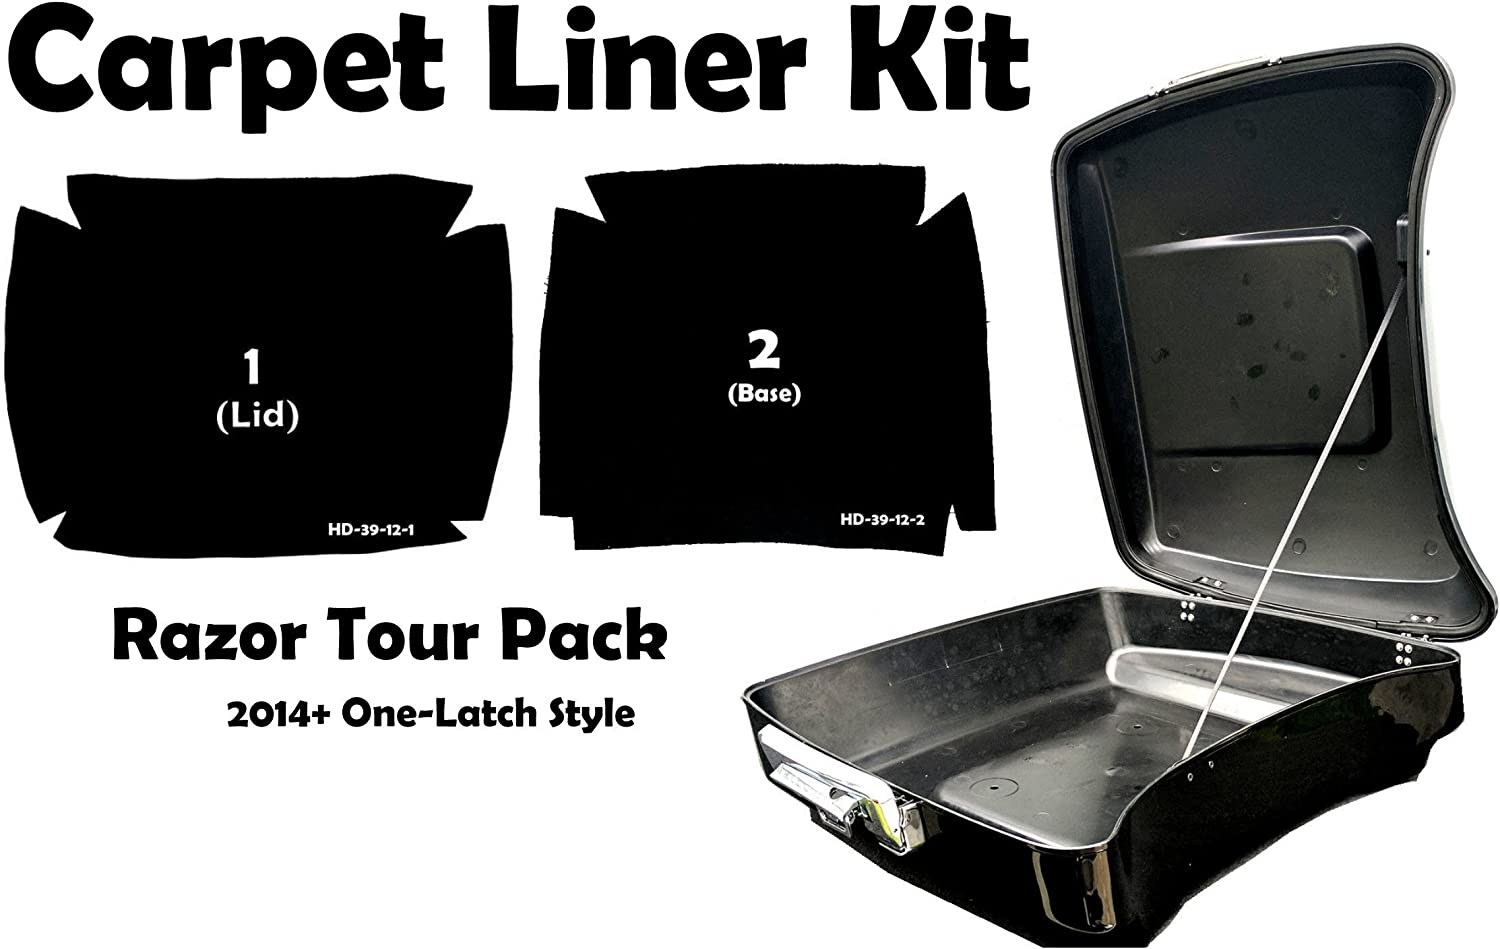 One Latch Style Harley-Davidson Razor Tour Pak Pack Graphite Grey Carpet Liner Kit for 2014